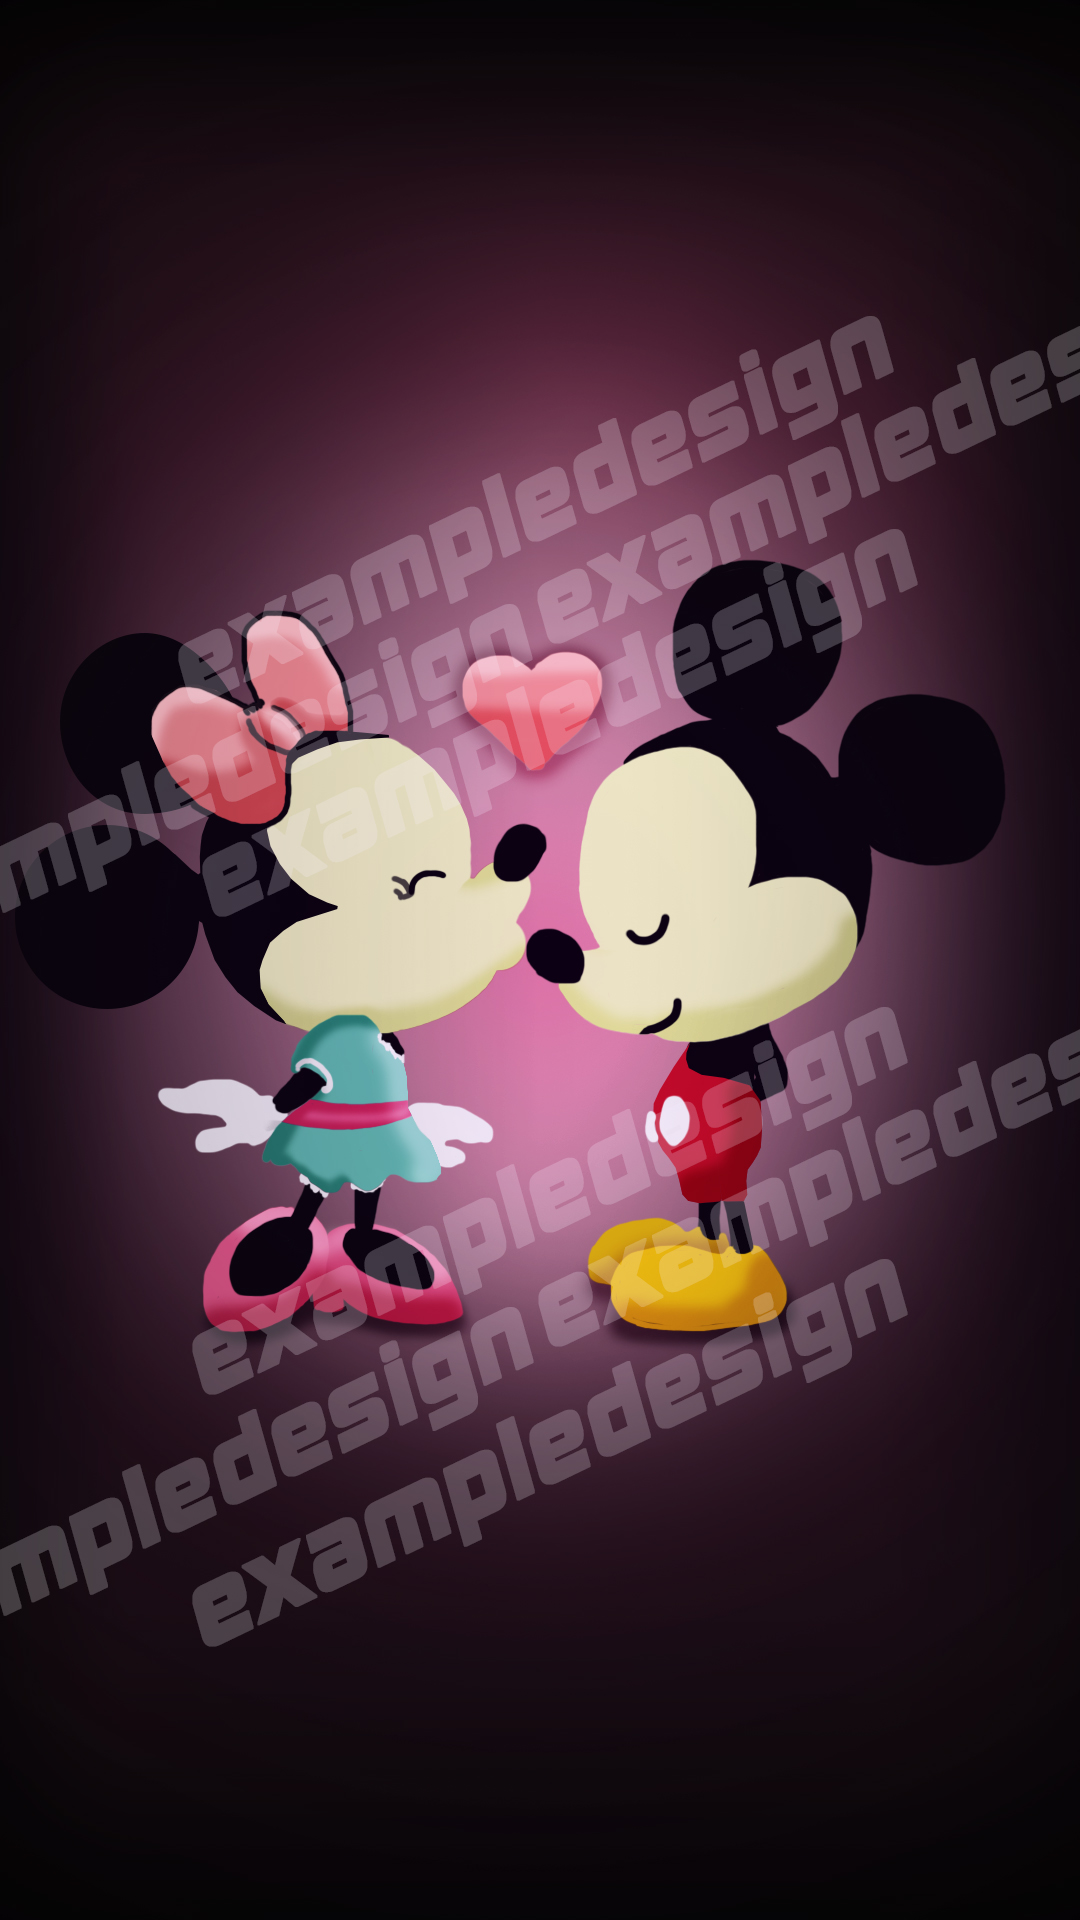 Minnie and Mickey Mouse Free Draw Iphone bg by exampledesign